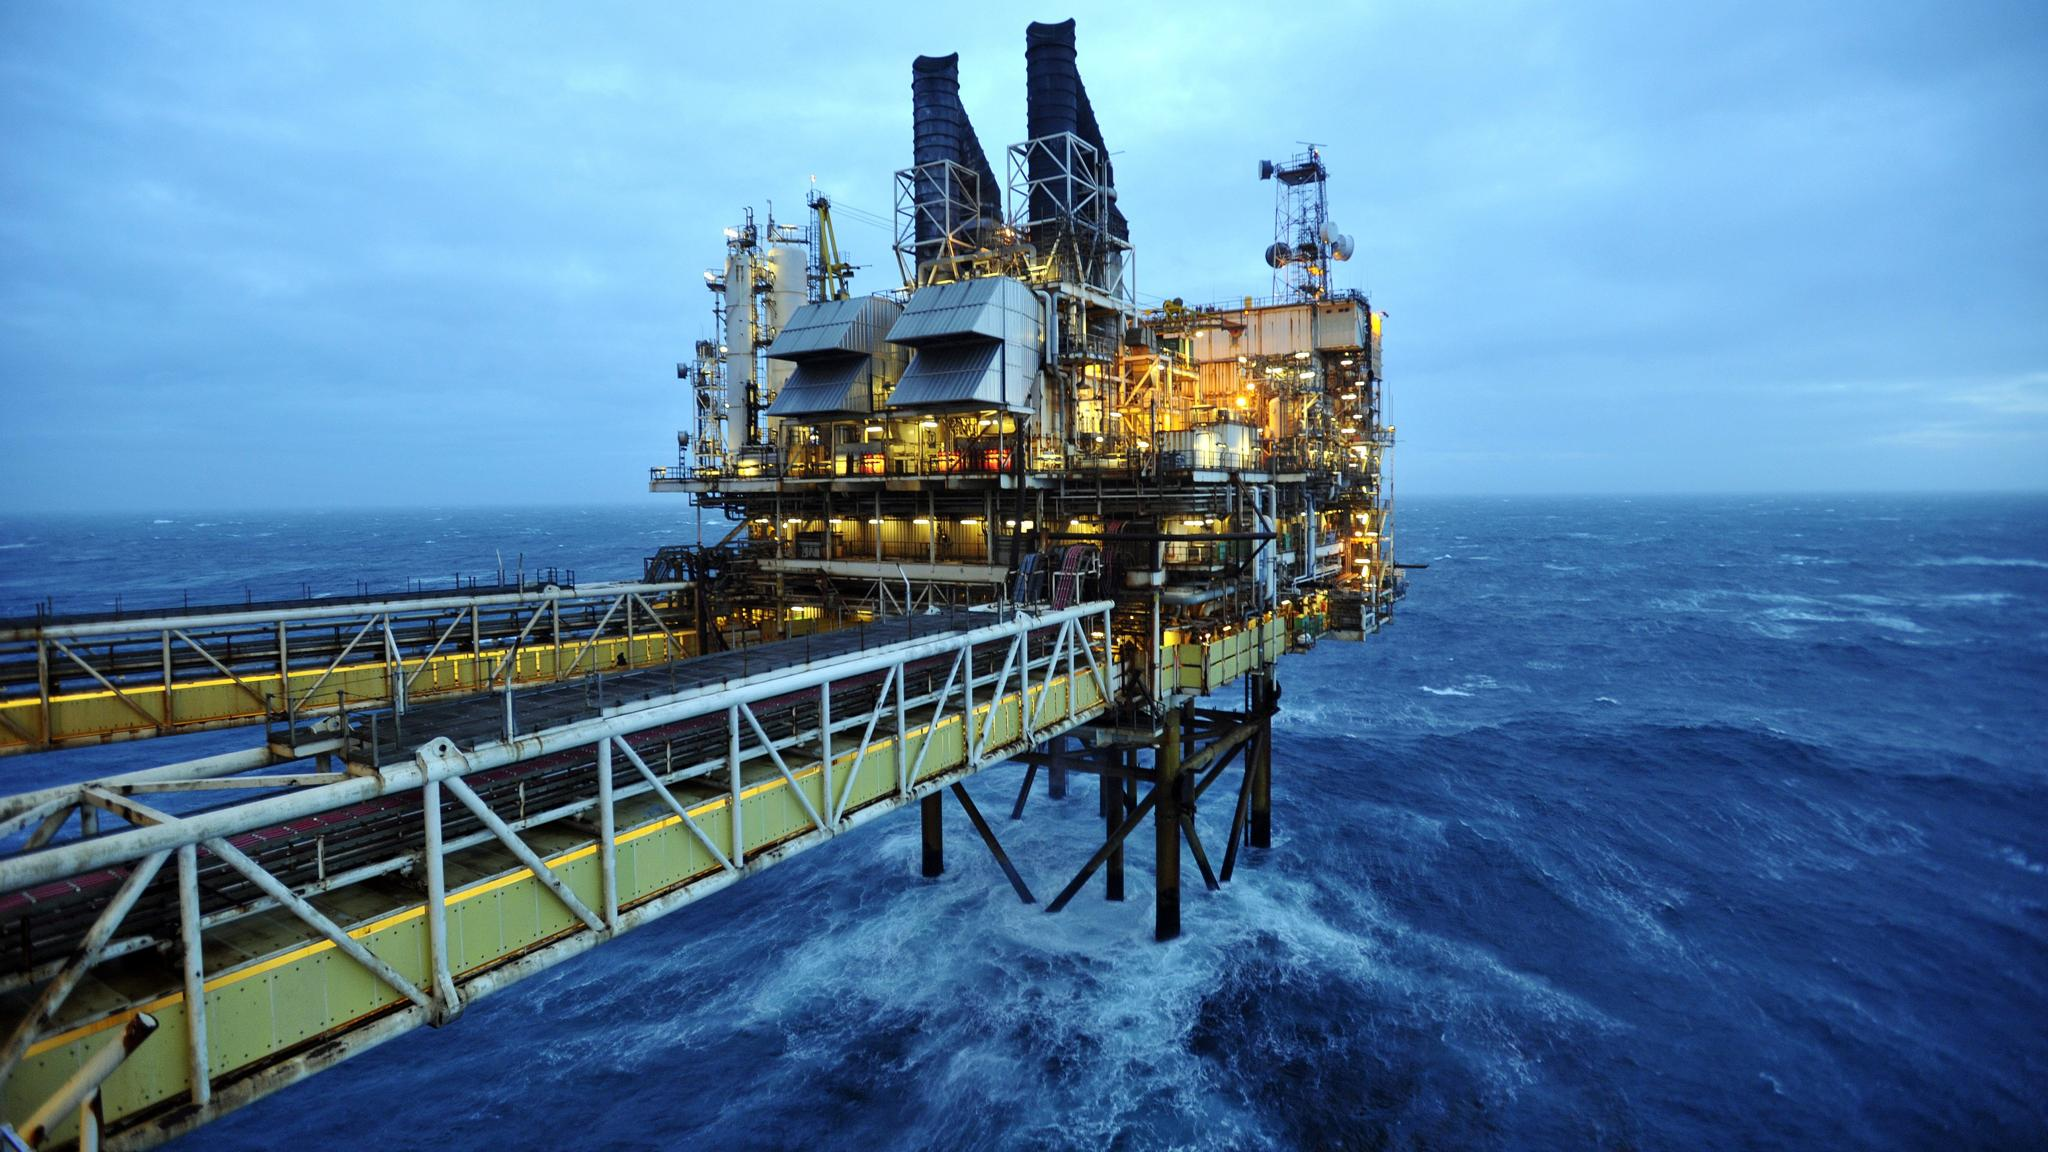 Wintershall snaps up more Statoil North Sea assets